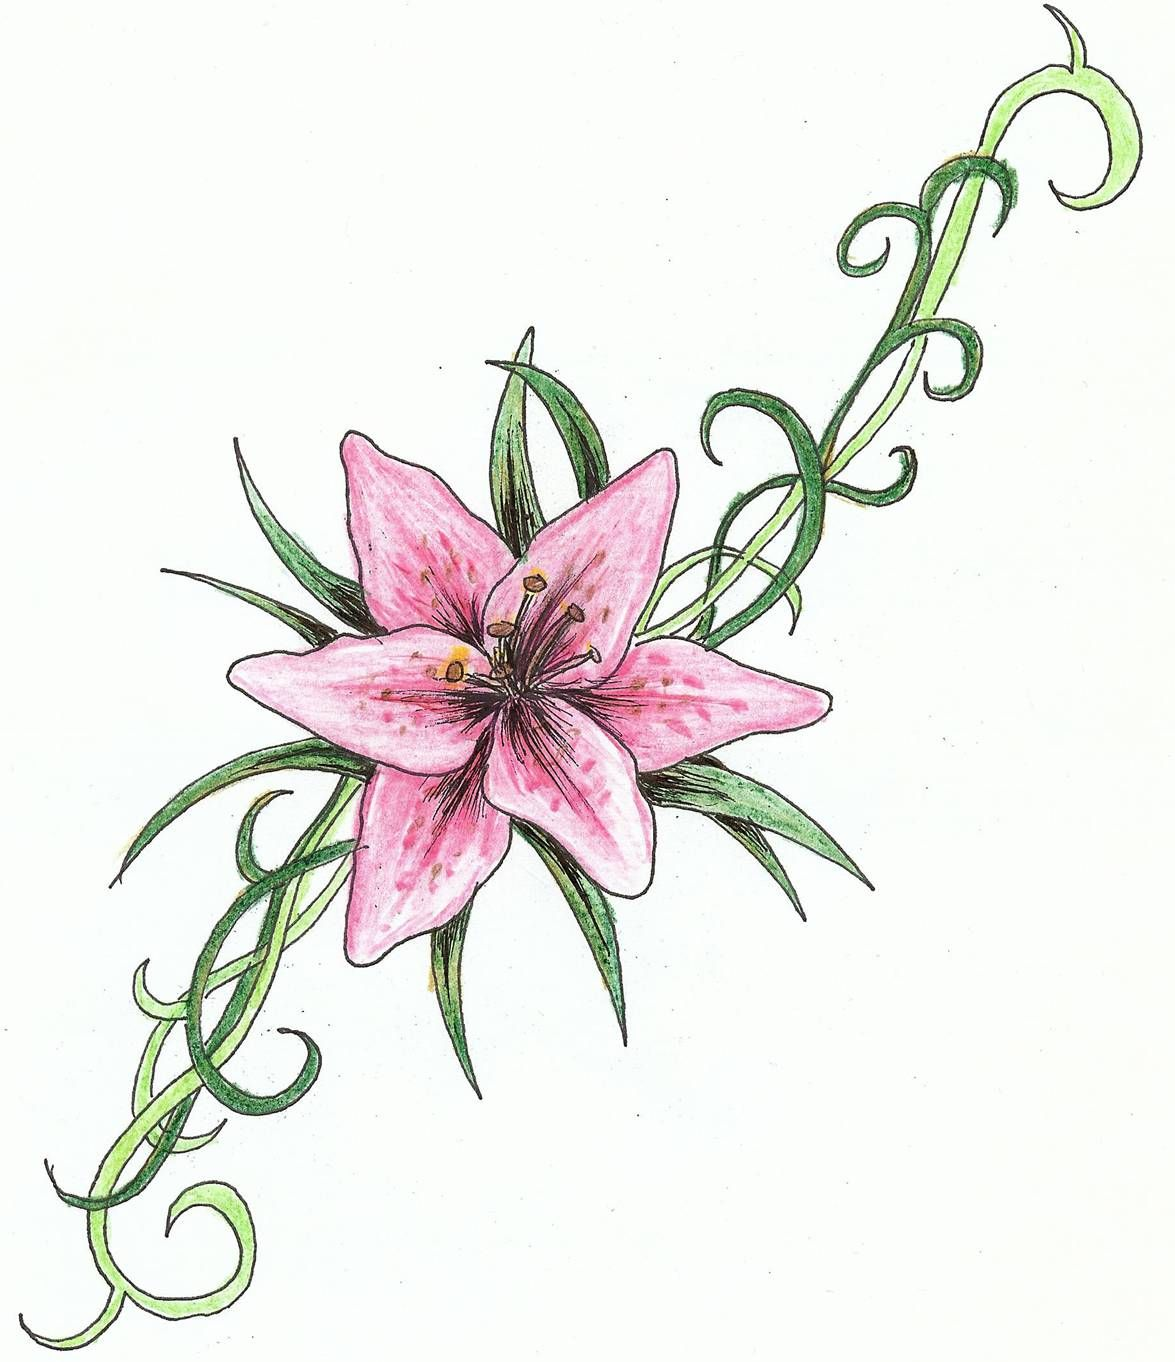 Stargazer lily tattoo designs bing images tattoos pinterest stargazer lily tattoo designs bing images dhlflorist Image collections